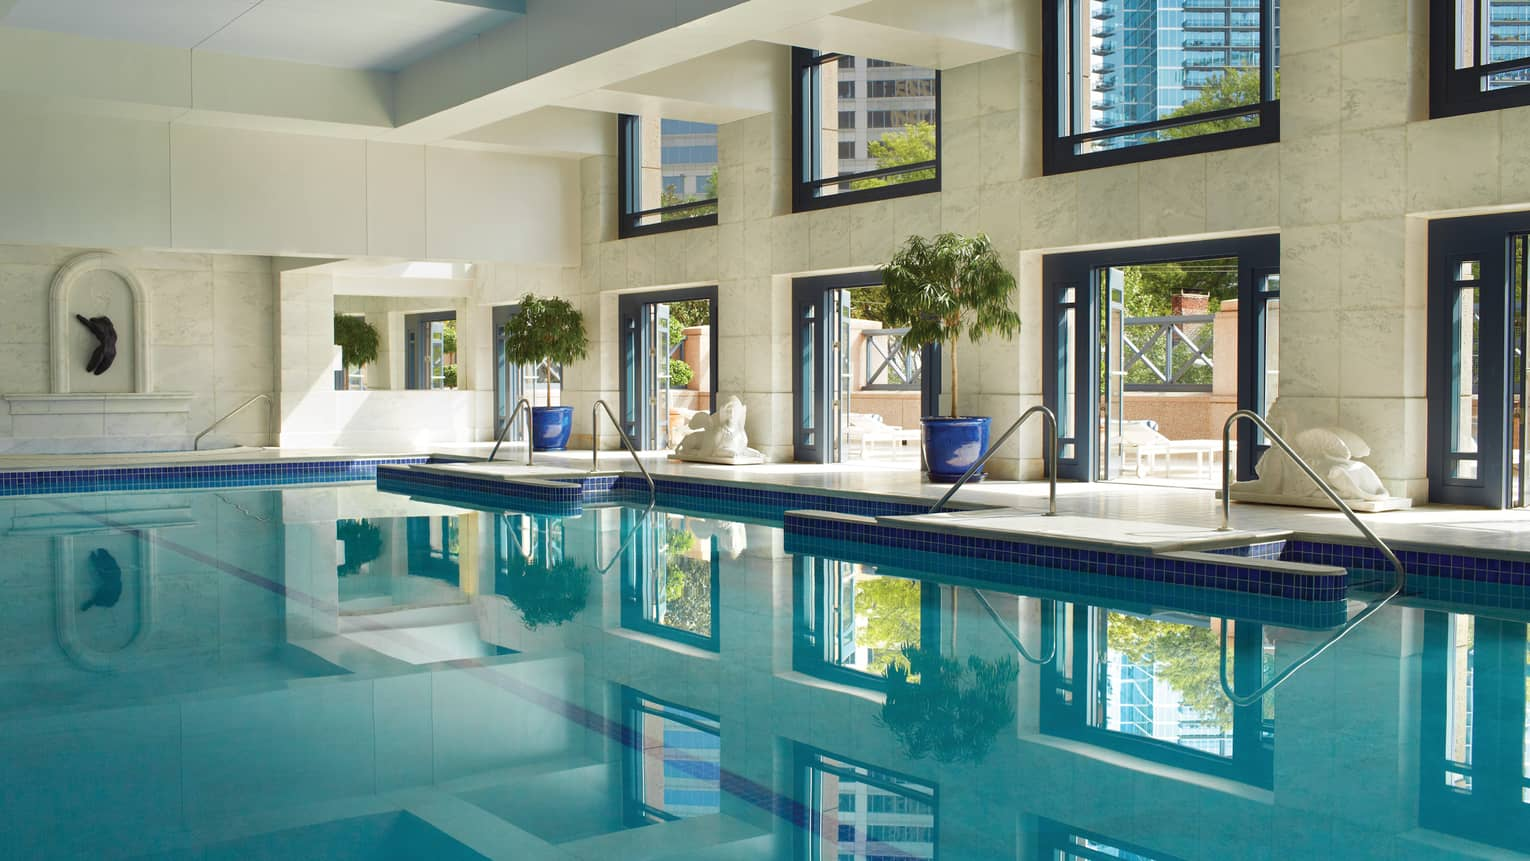 Saltwater lap swimming pool under white marble walls, tall sunny windows